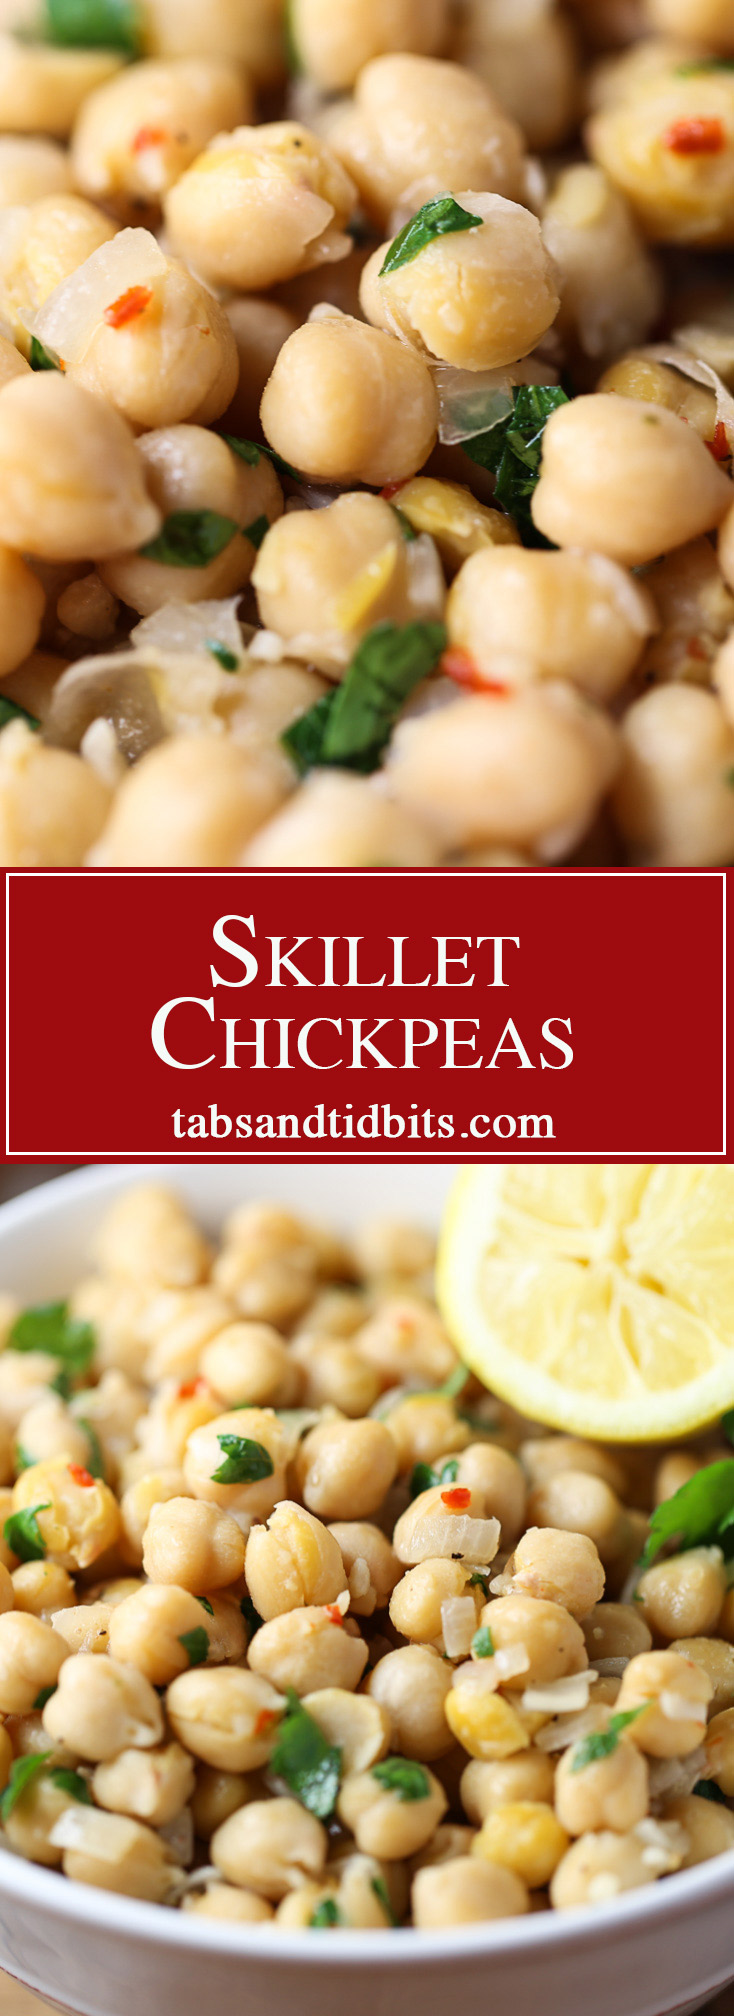 Skillet Chickpeas - Delicious chickpeas cooked with onion, garlic & red pepper flakes and coated with fresh lemon juice and parsley.